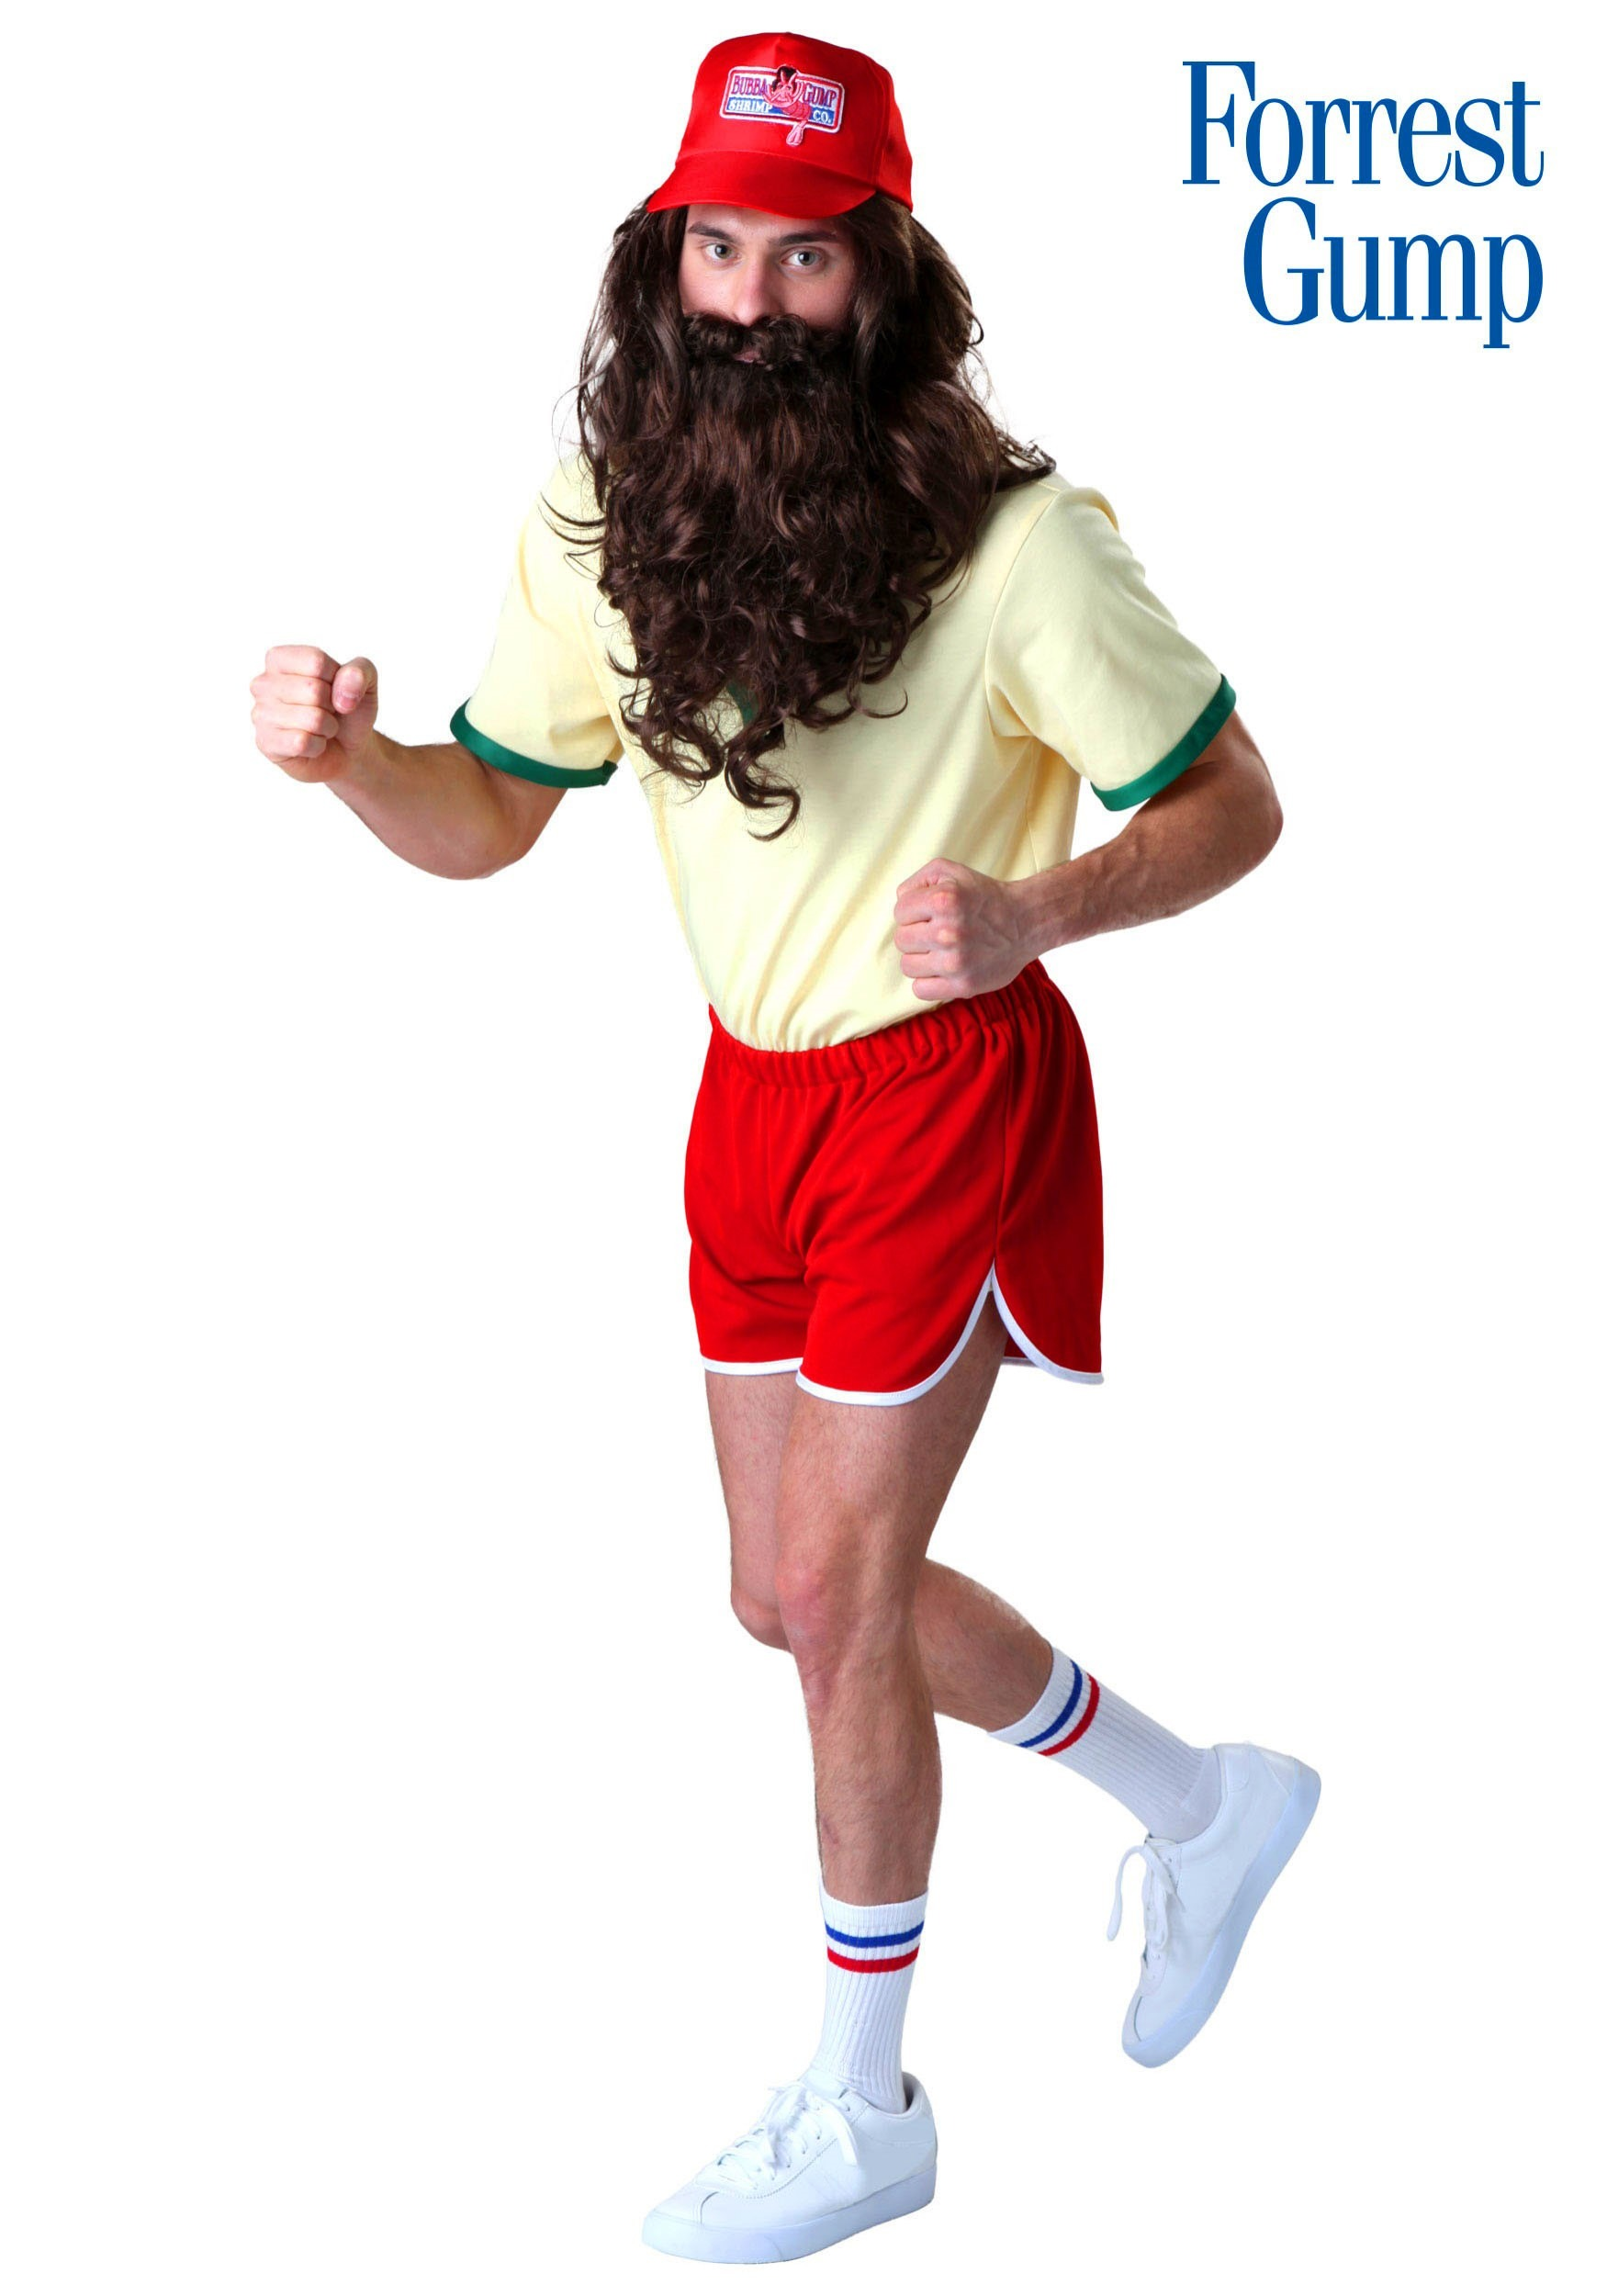 Running Forest Gump Costume